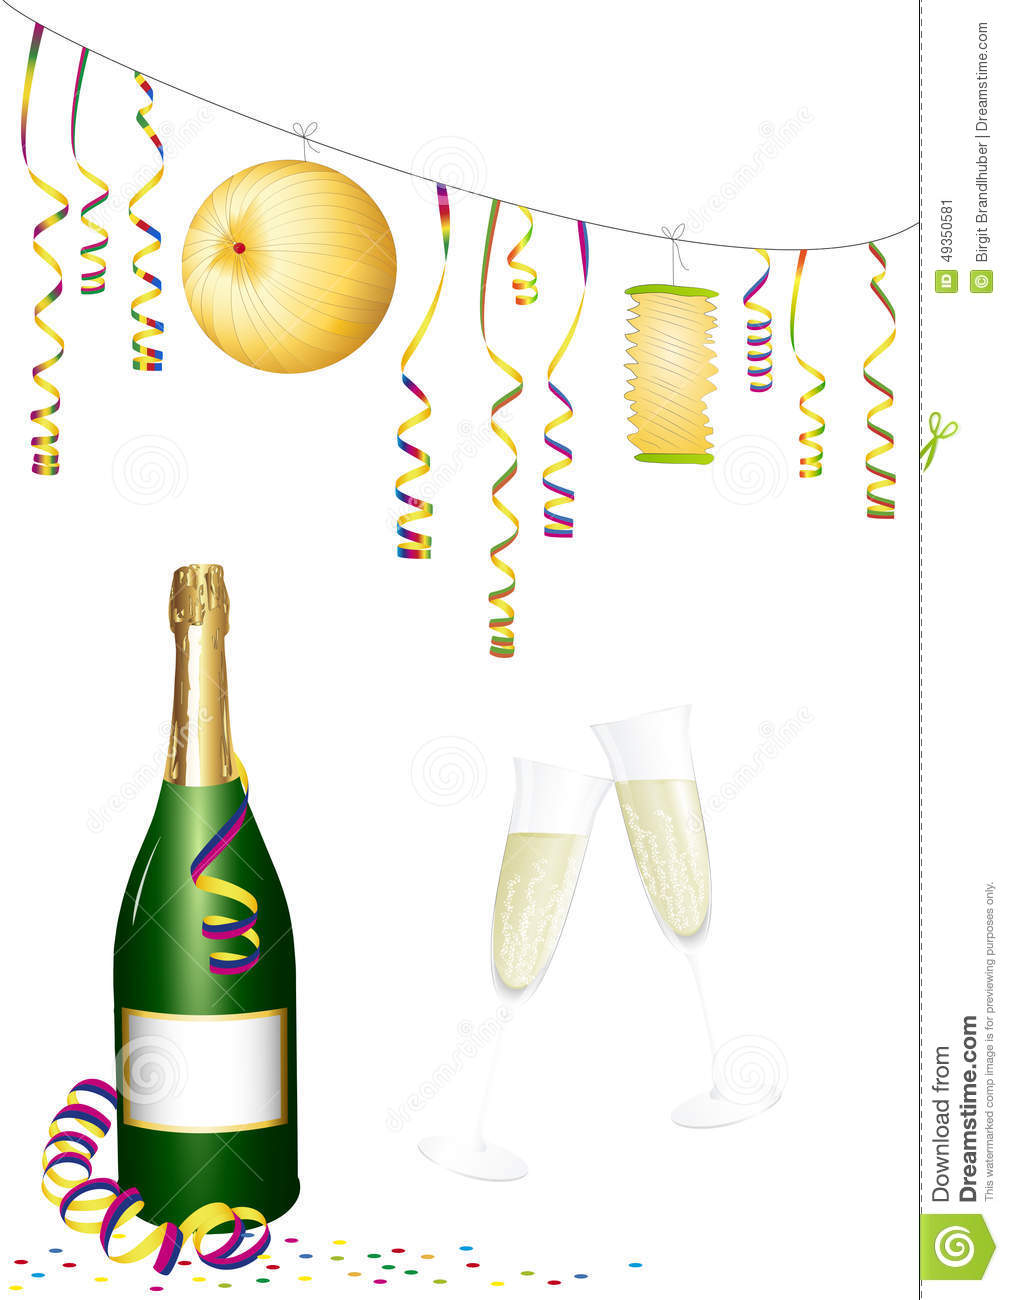 sparkling wine essay Study flashcards on wine composition and chemistry at cramcom quickly memorize the terms essays essays home a dissolved gas found in wine that gives sparkling wine its bubbles.